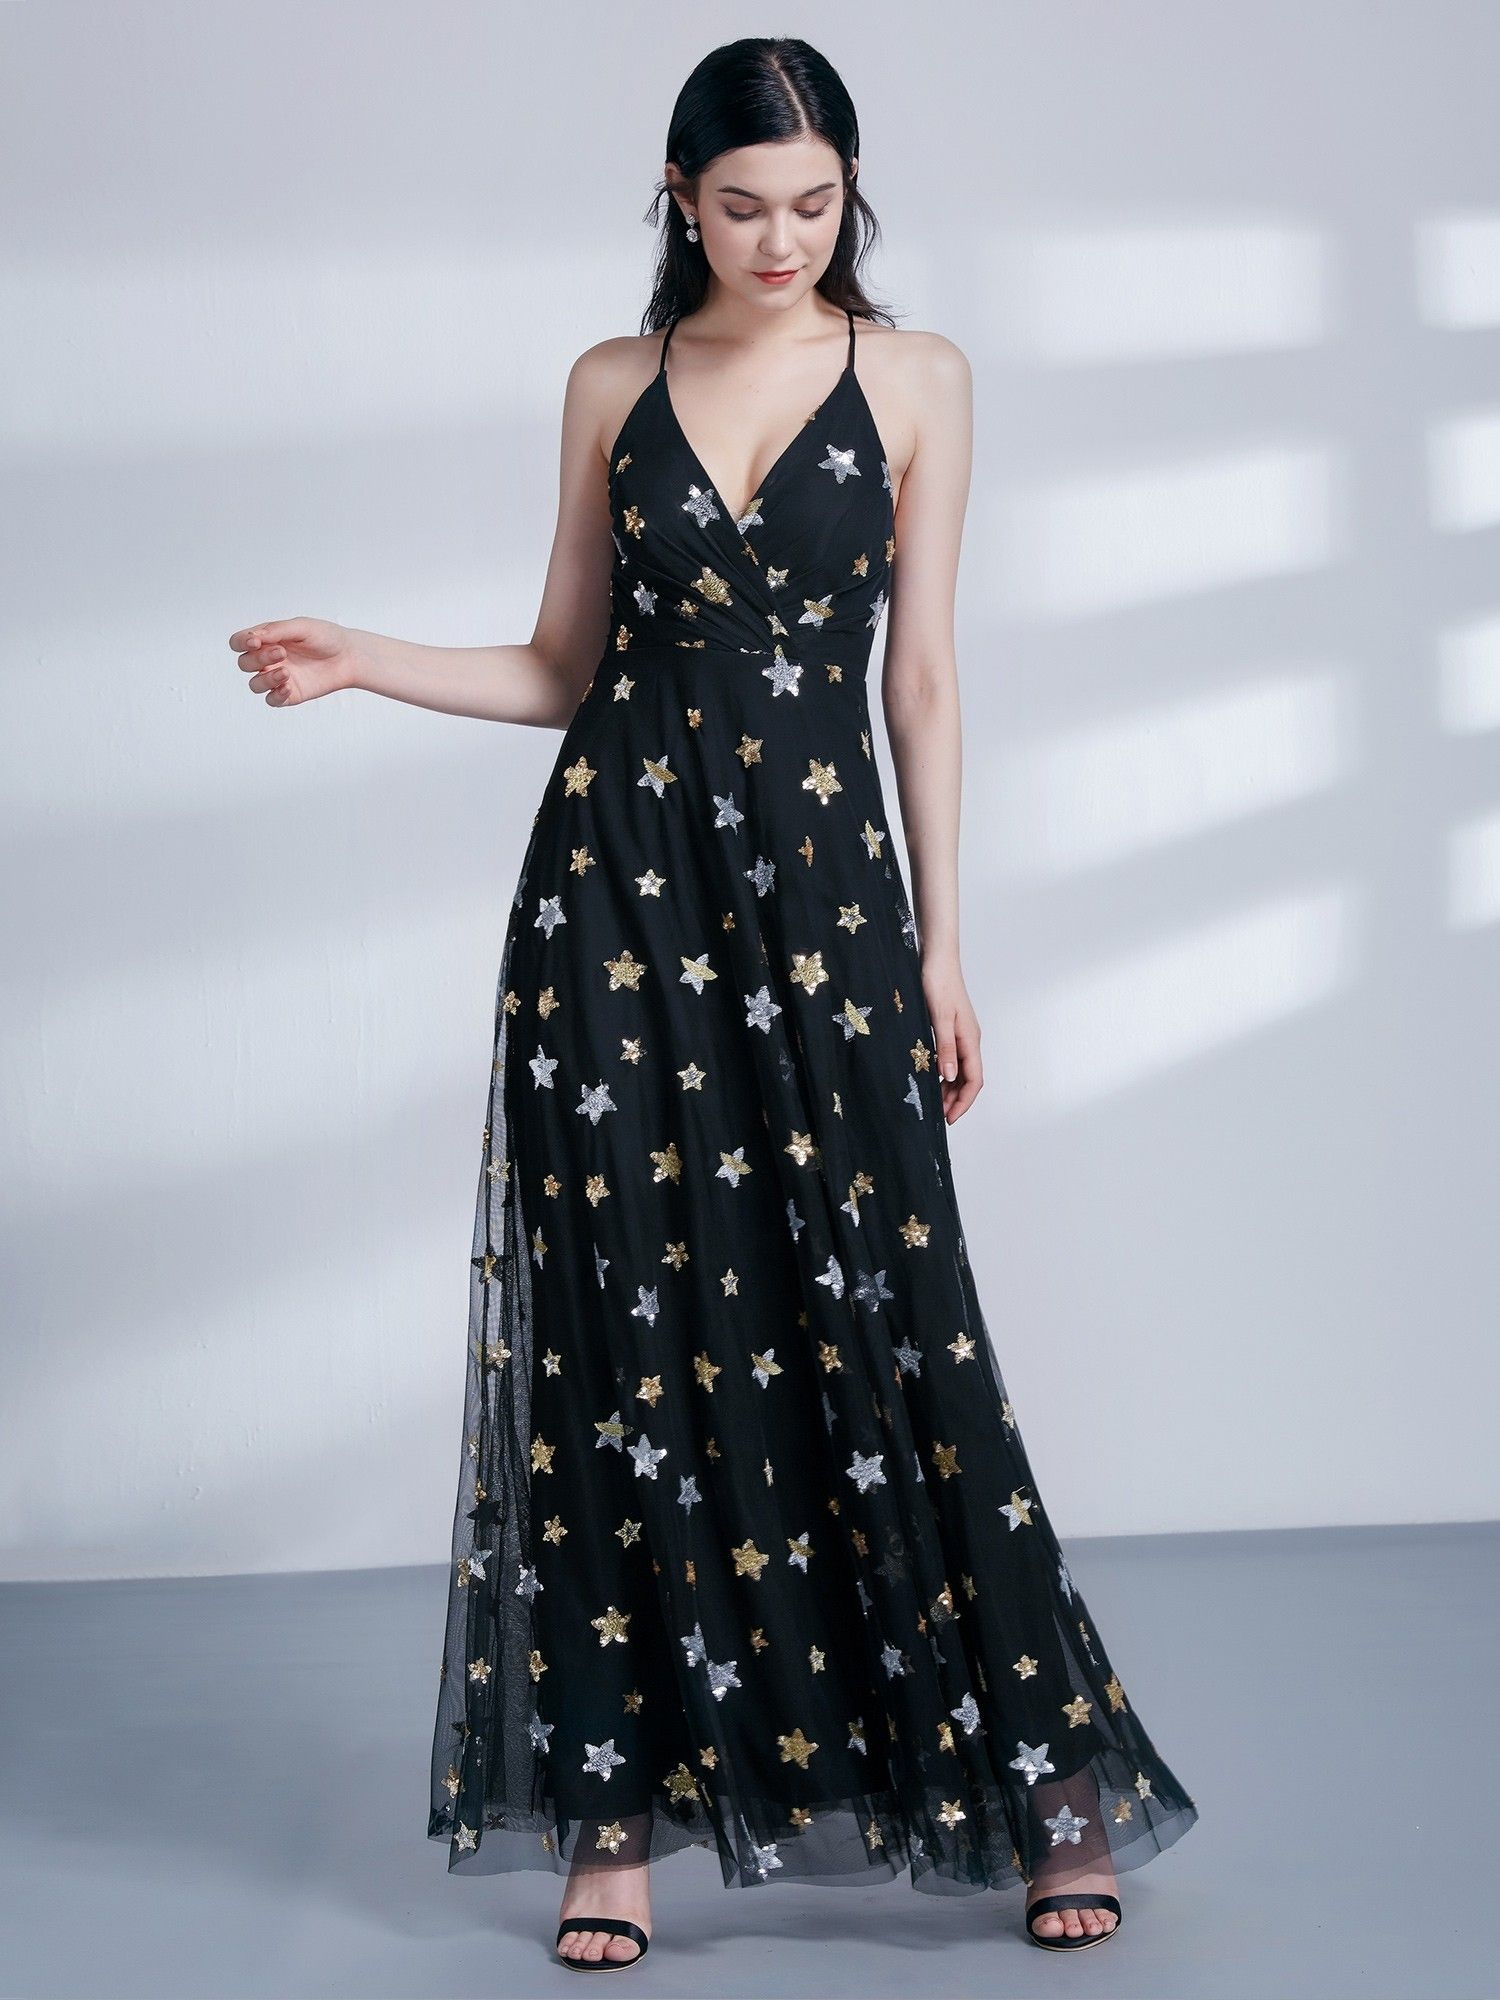 Star Print V Neck Long Party Dress in 2019  726cf0a96d72